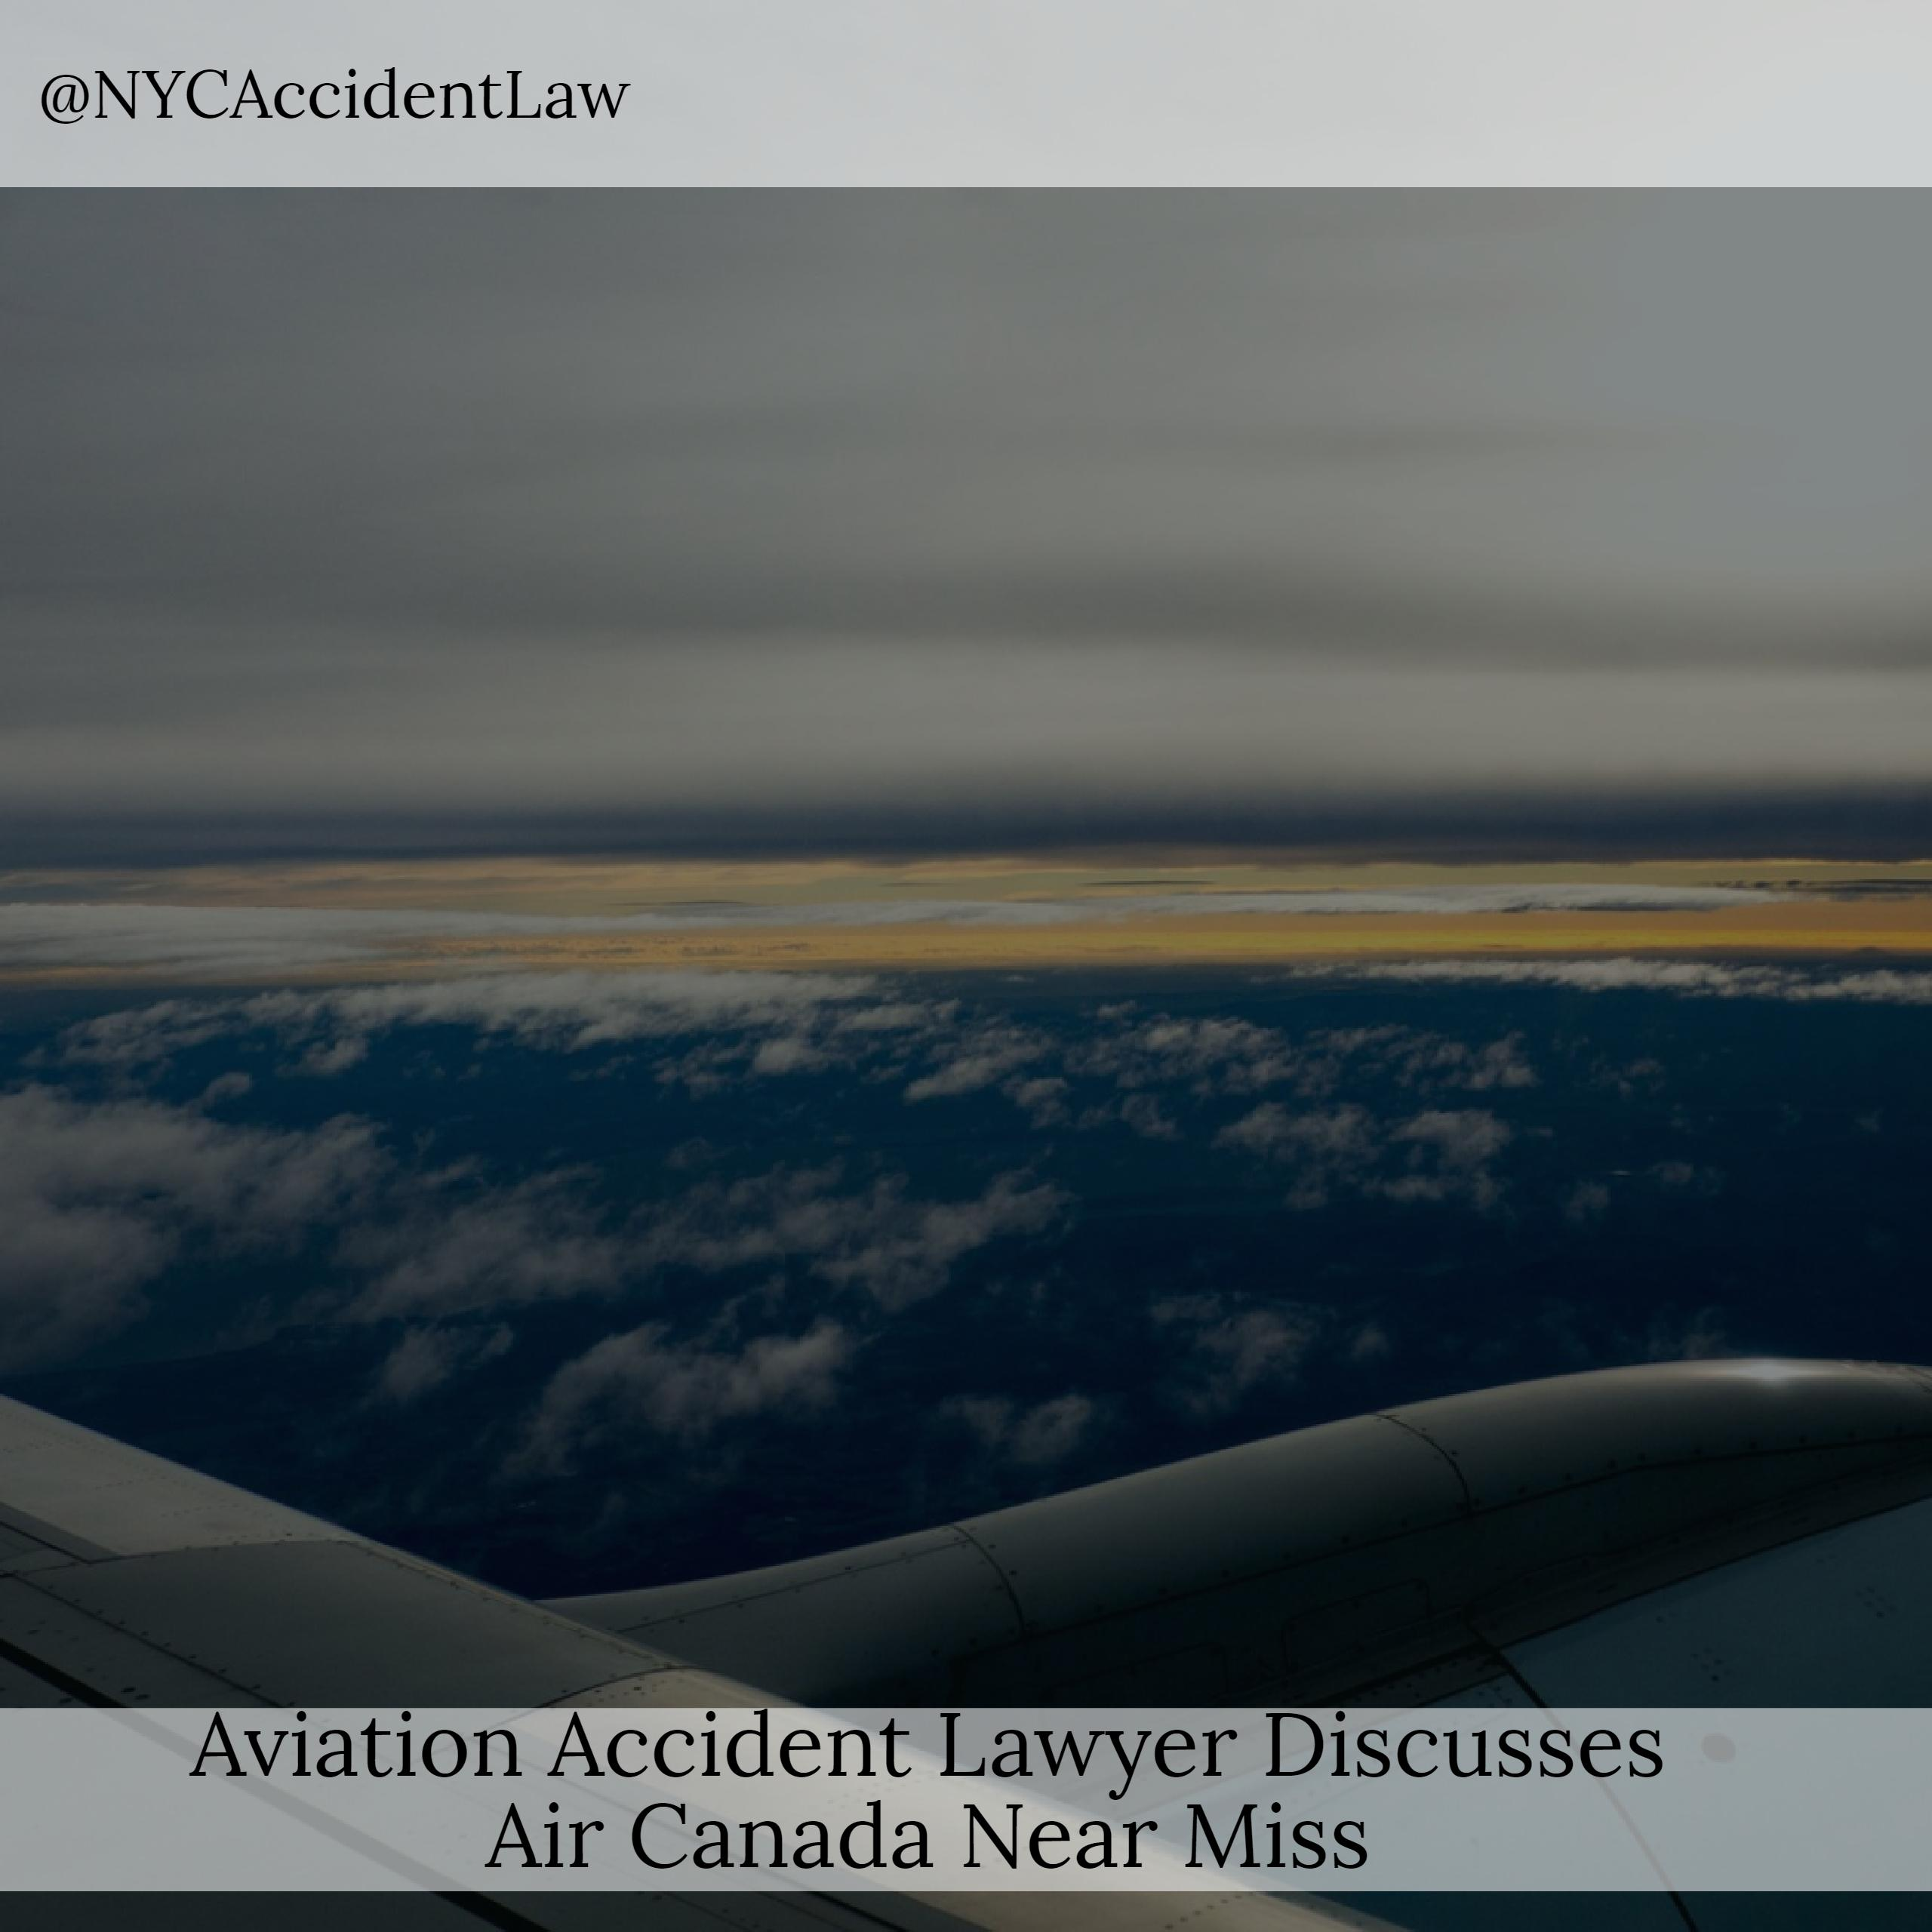 Air Canada Near Miss New York City airline accident lawyer Jonathan C. Reiter